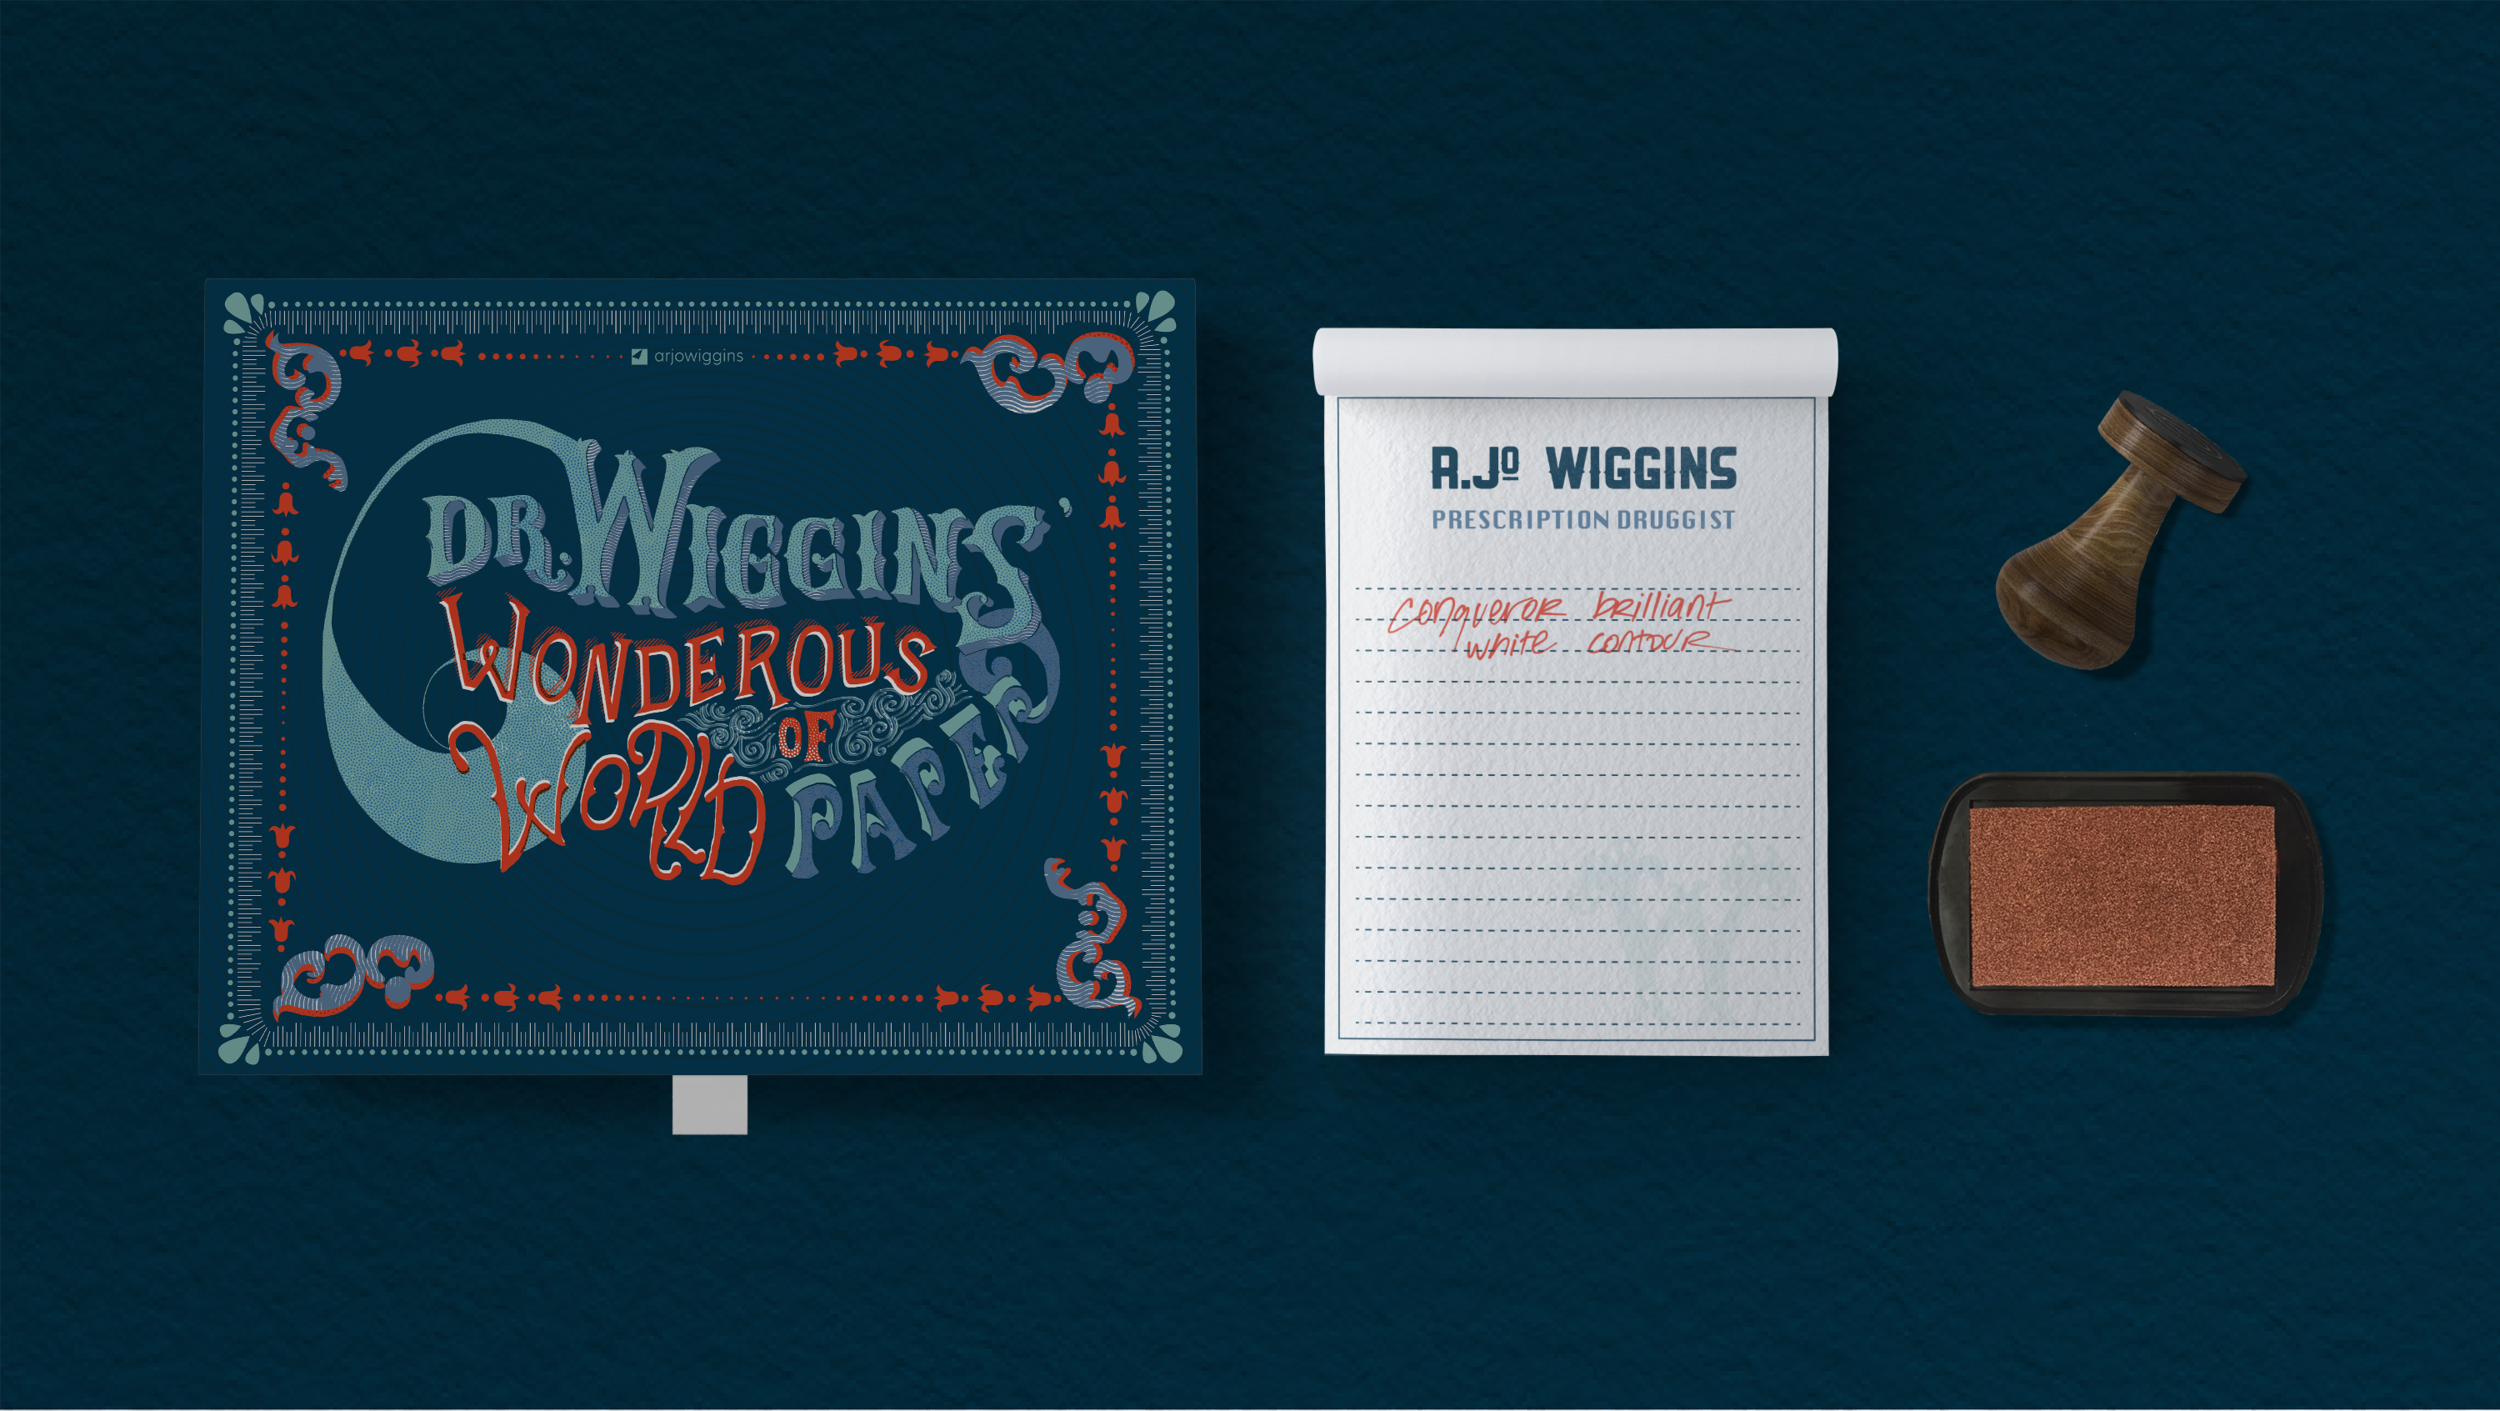 Dr. Wiggins' Wonderous World of Paper - EXPERIENCE DESIGNThis promotion for Arjo Wiggins offers creatives a tactile paper experience to cure the digital depression that often plague them.